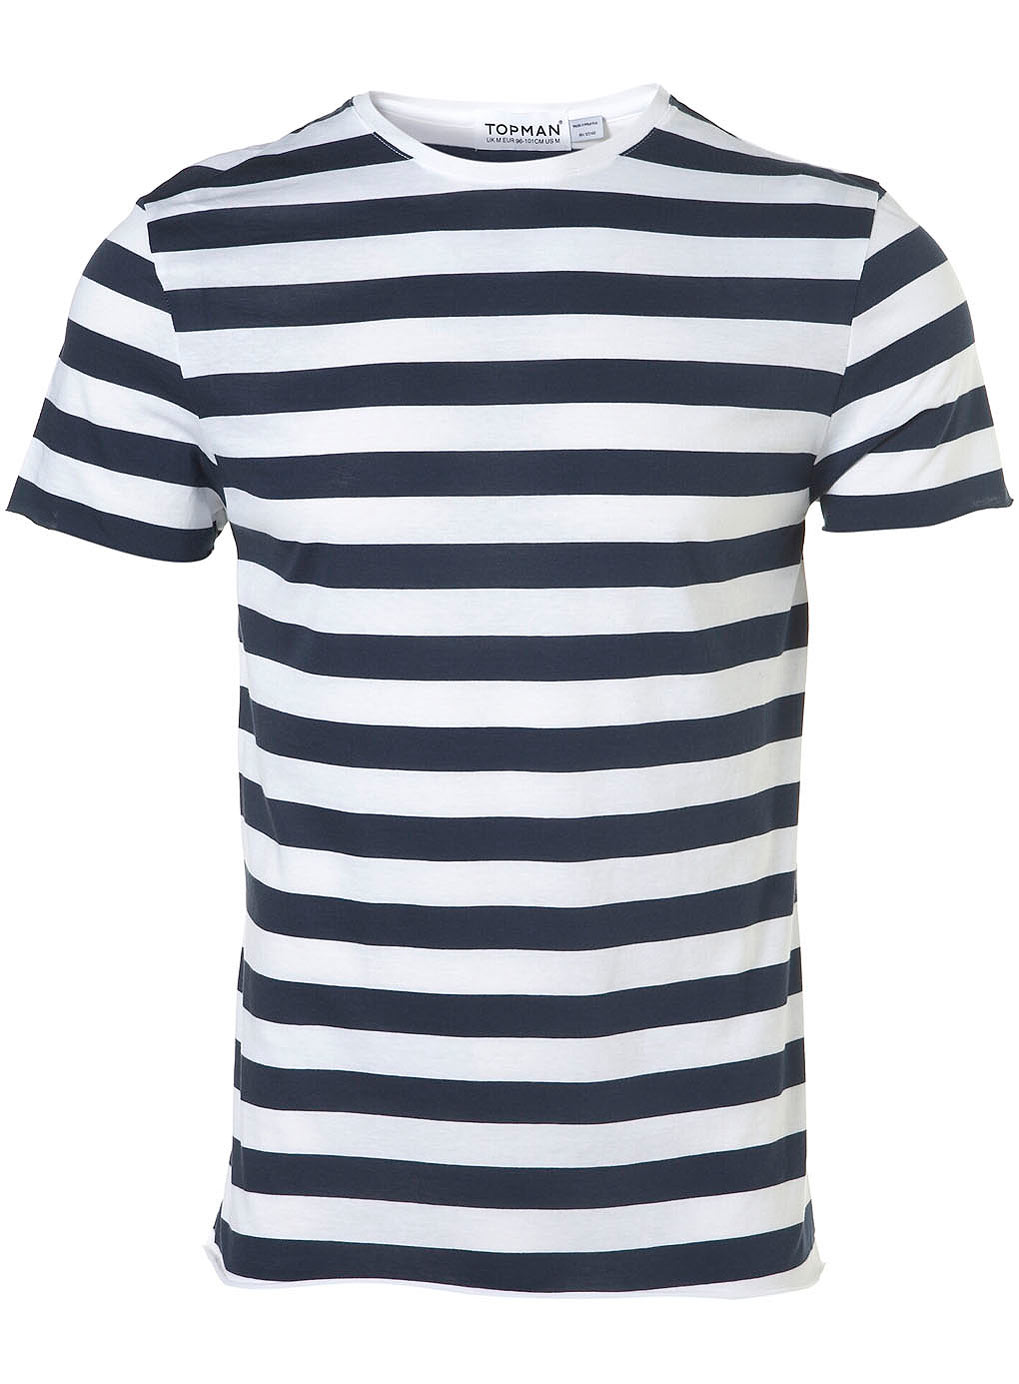 Find great deals on eBay for navy and white stripe shirt. Shop with confidence.